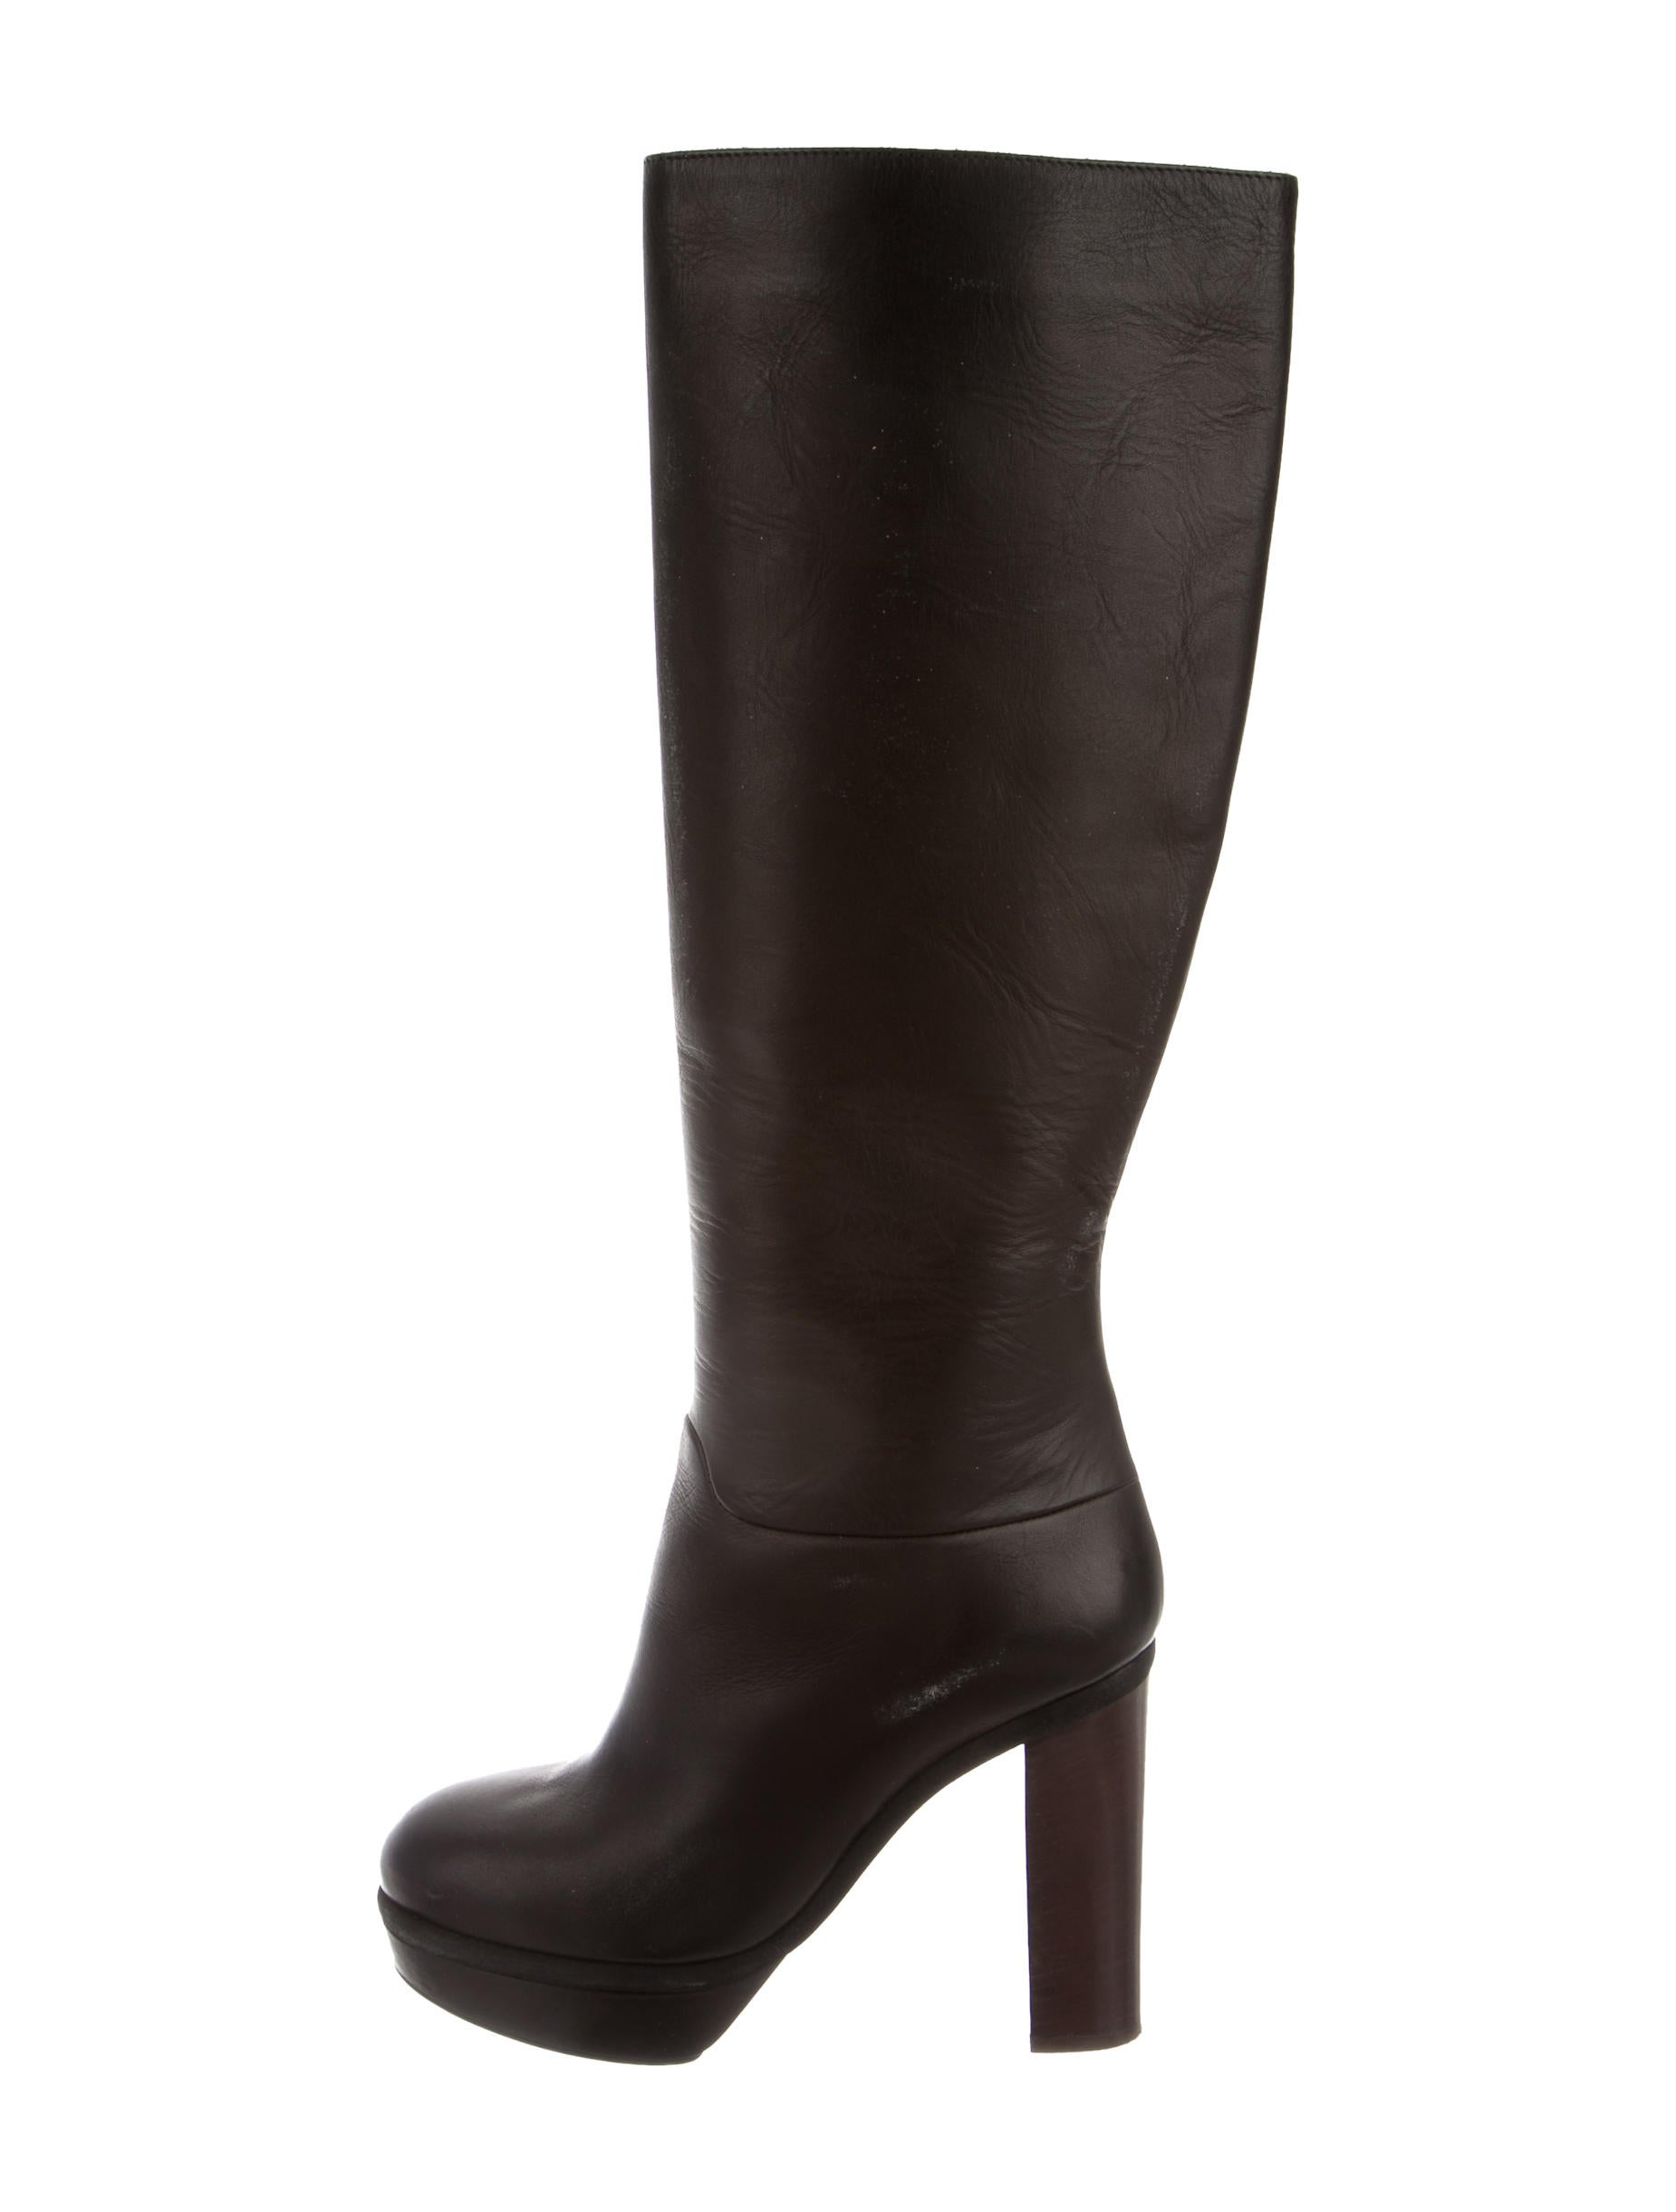 Buy the latest black platform knee high boots cheap shop fashion style with free shipping, and check out our daily updated new arrival black platform knee high boots at taradsod.tk